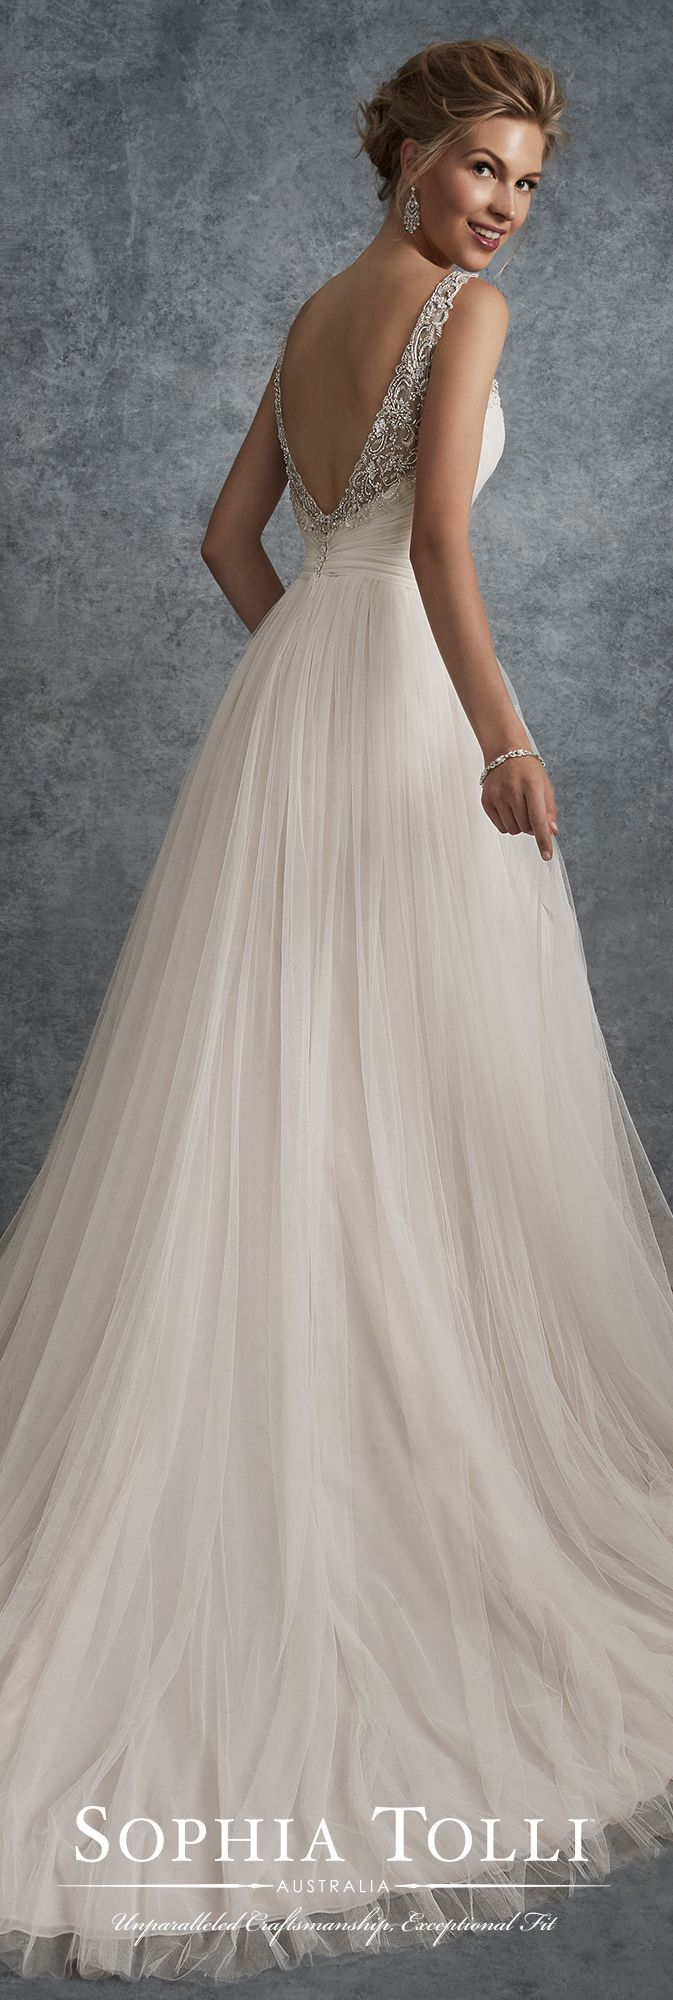 Sophia Tolli Fall 2017 Wedding Gown Collection - Style No. Y21755 Delta - sleeveless soft tulle A-line wedding dress with beaded illusion shoulder straps and V-neckline